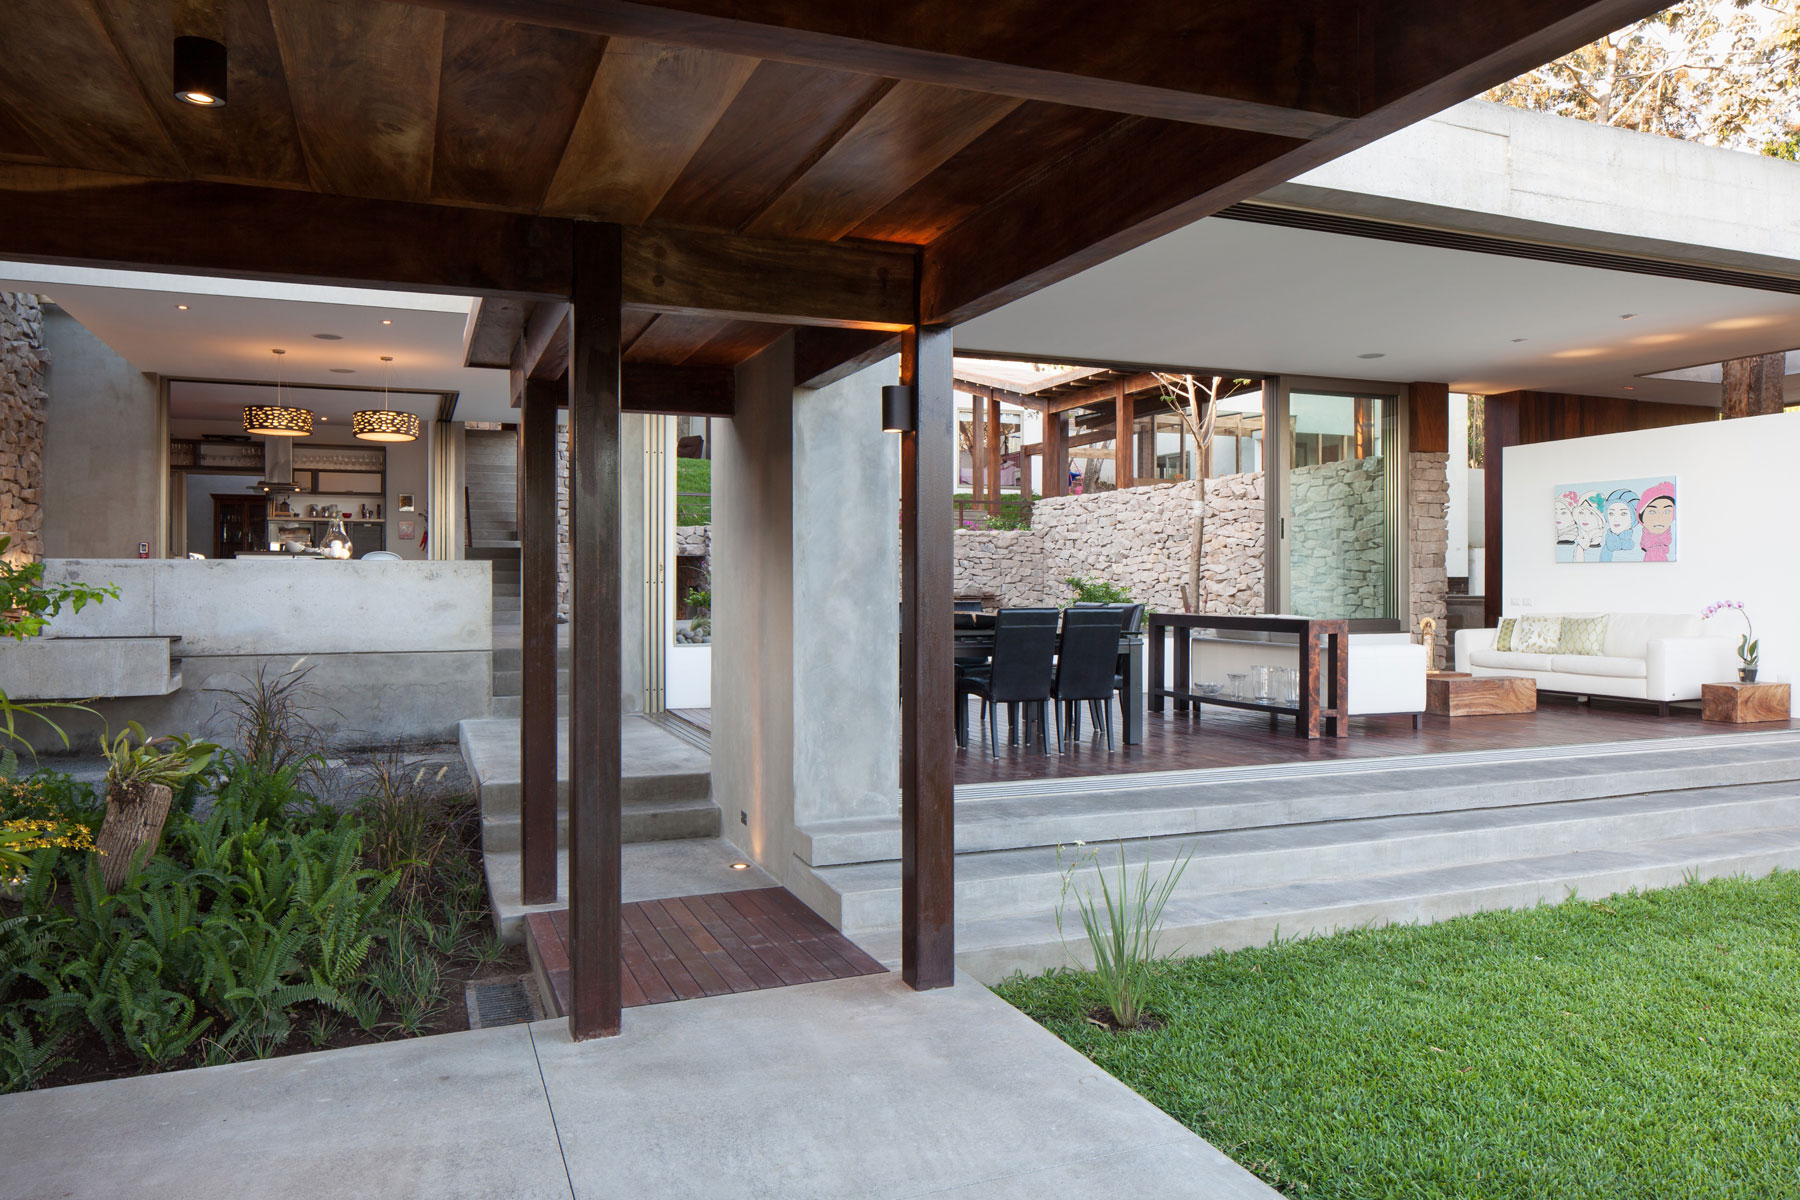 Modern rustic sensation of garden house in el salvador by for Garden design for house